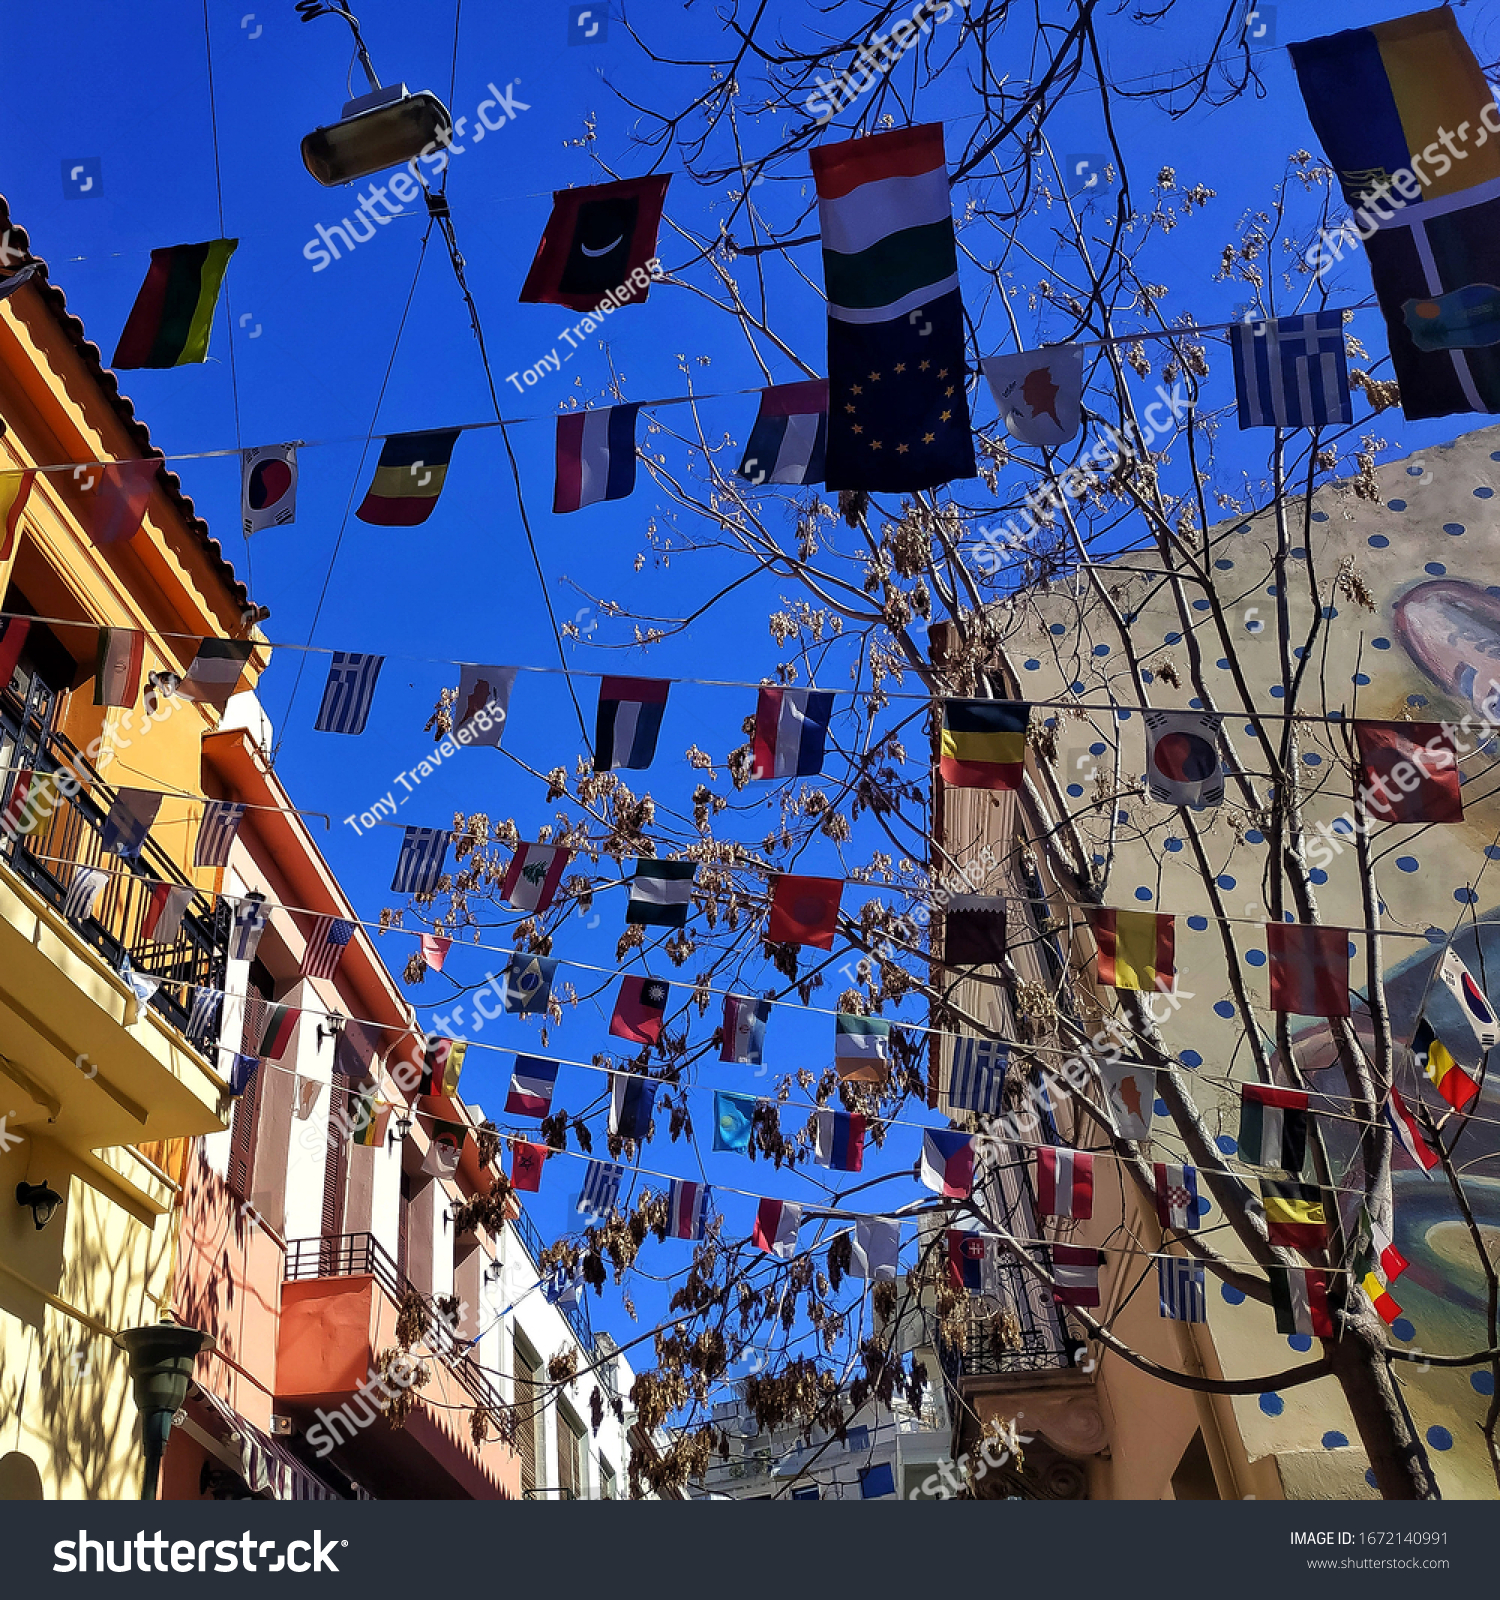 Waving world flags against a blue sky and colorful buildings